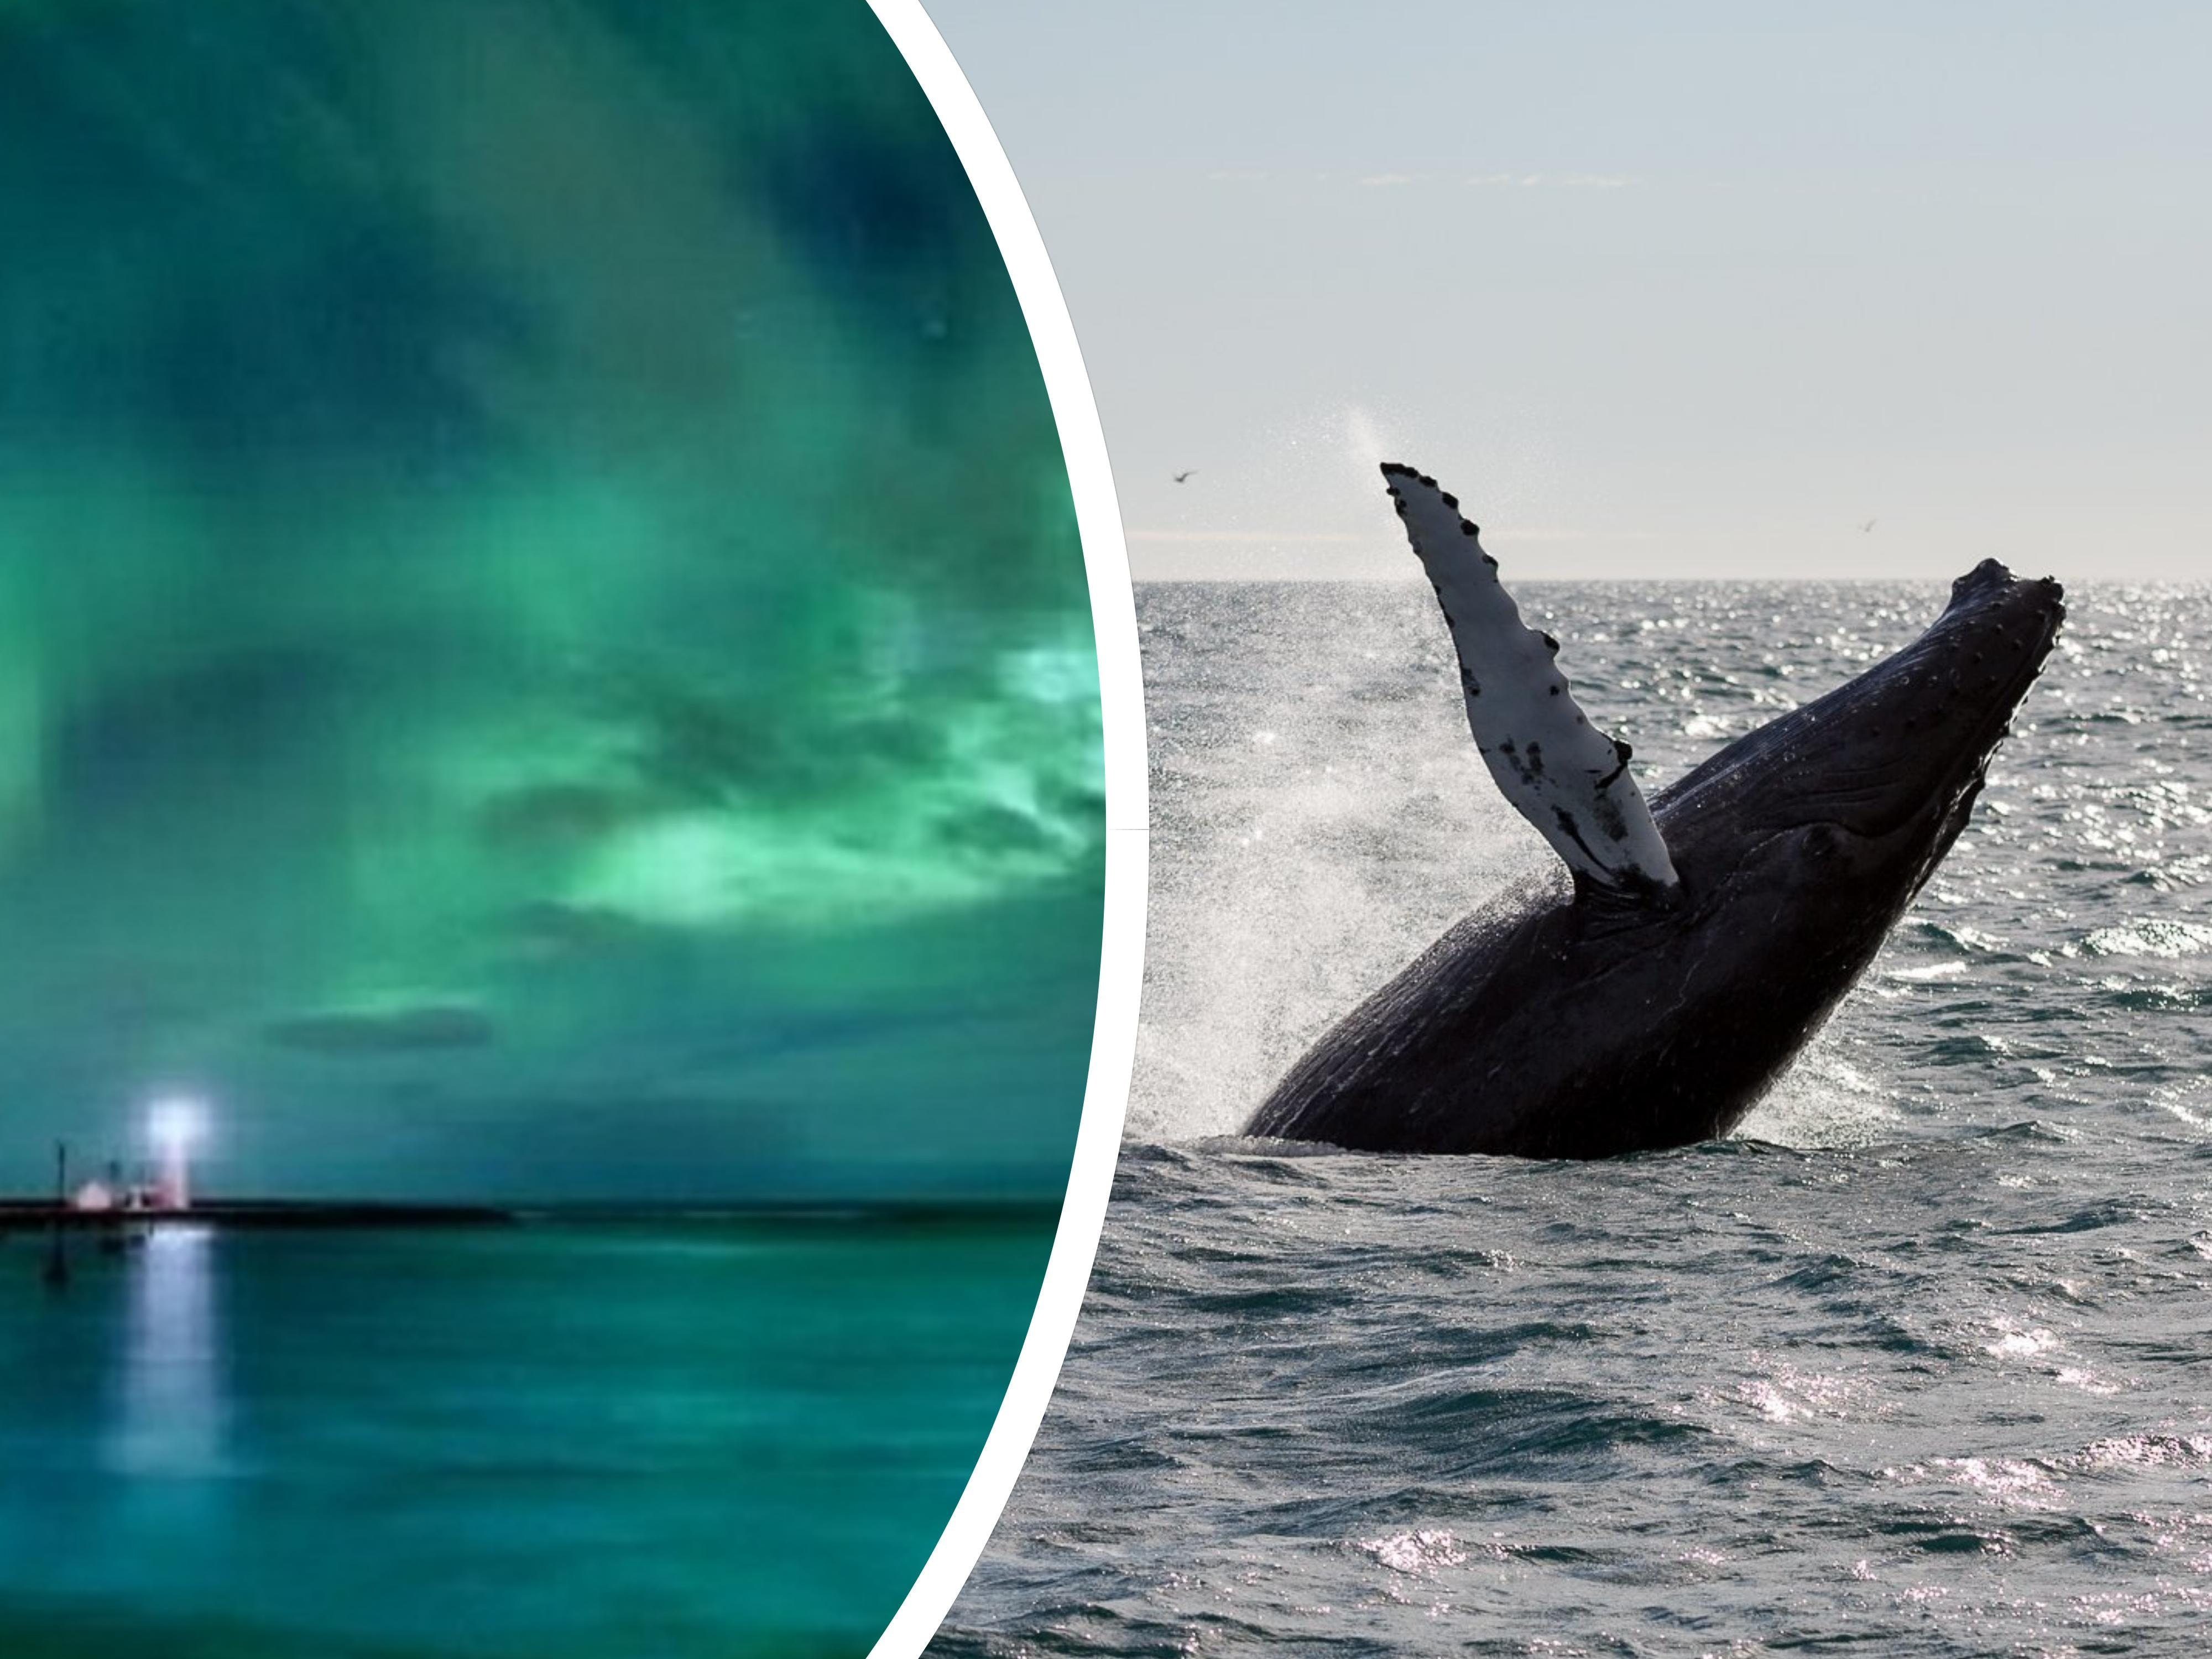 Whale Watching & Northern lights | 2-Tour Deal